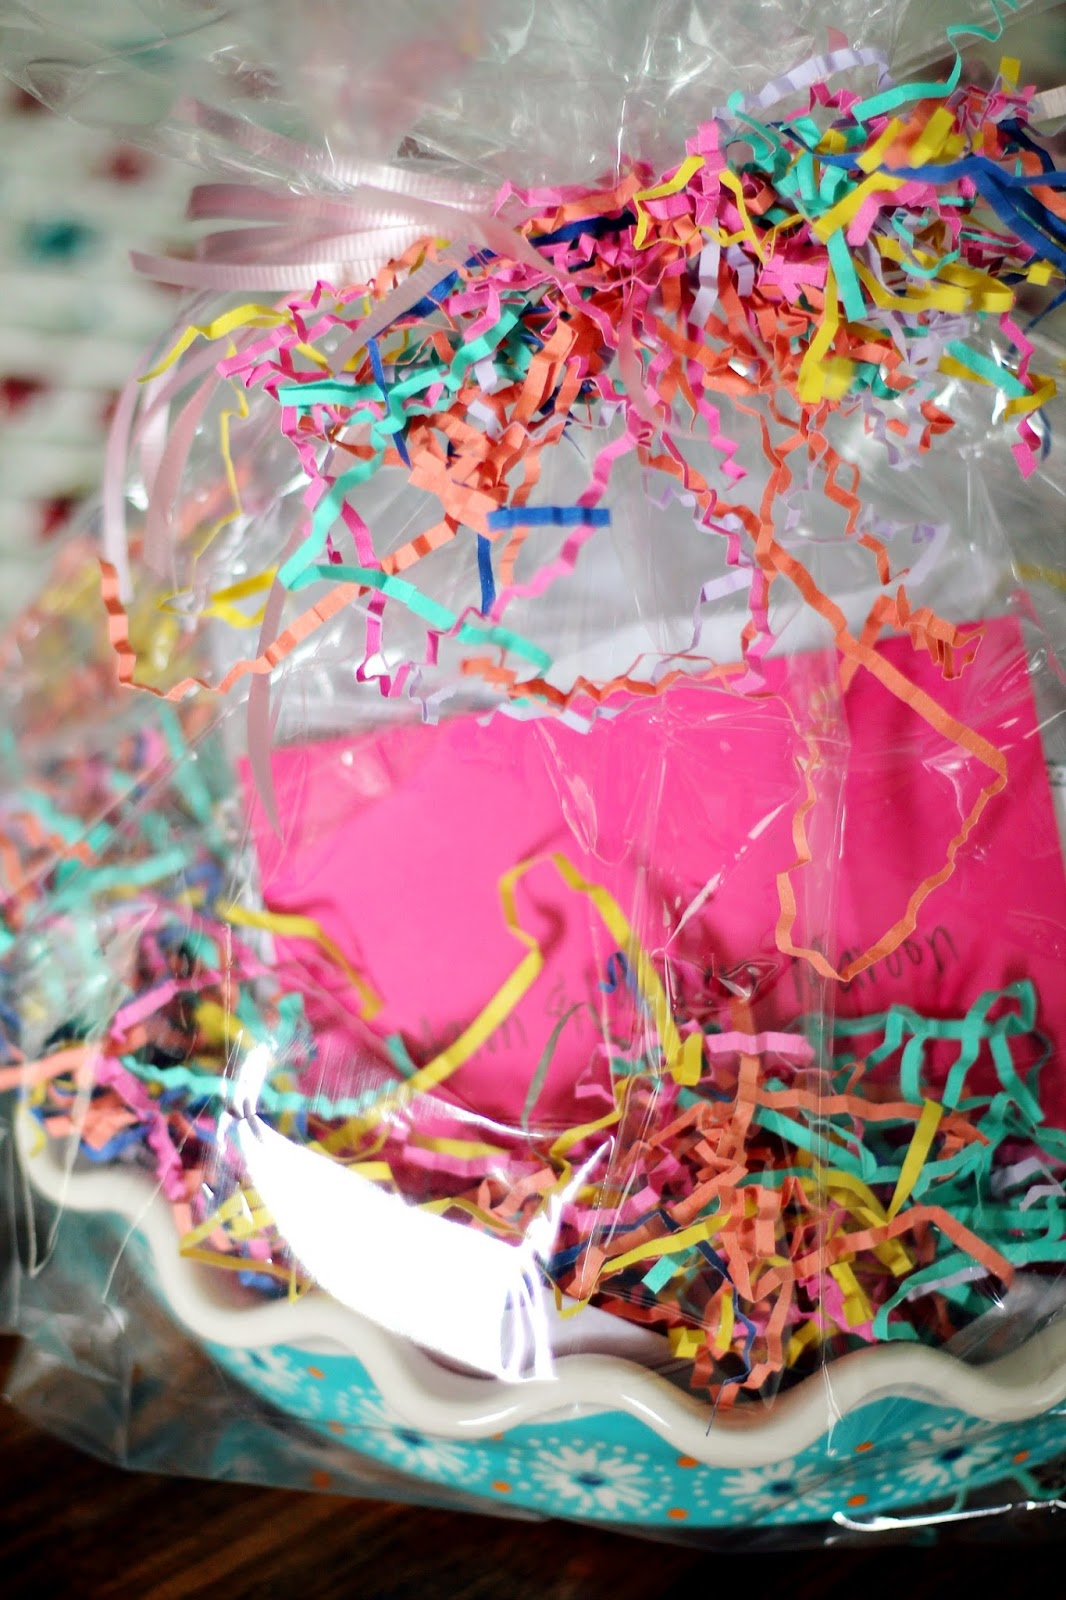 How to gift wrap a pie plate louisiana bride the older woman suggested i get a large clear cellophane bag tissue paper and tons of that easter basket looking brightly colored stringy paper stuff negle Choice Image